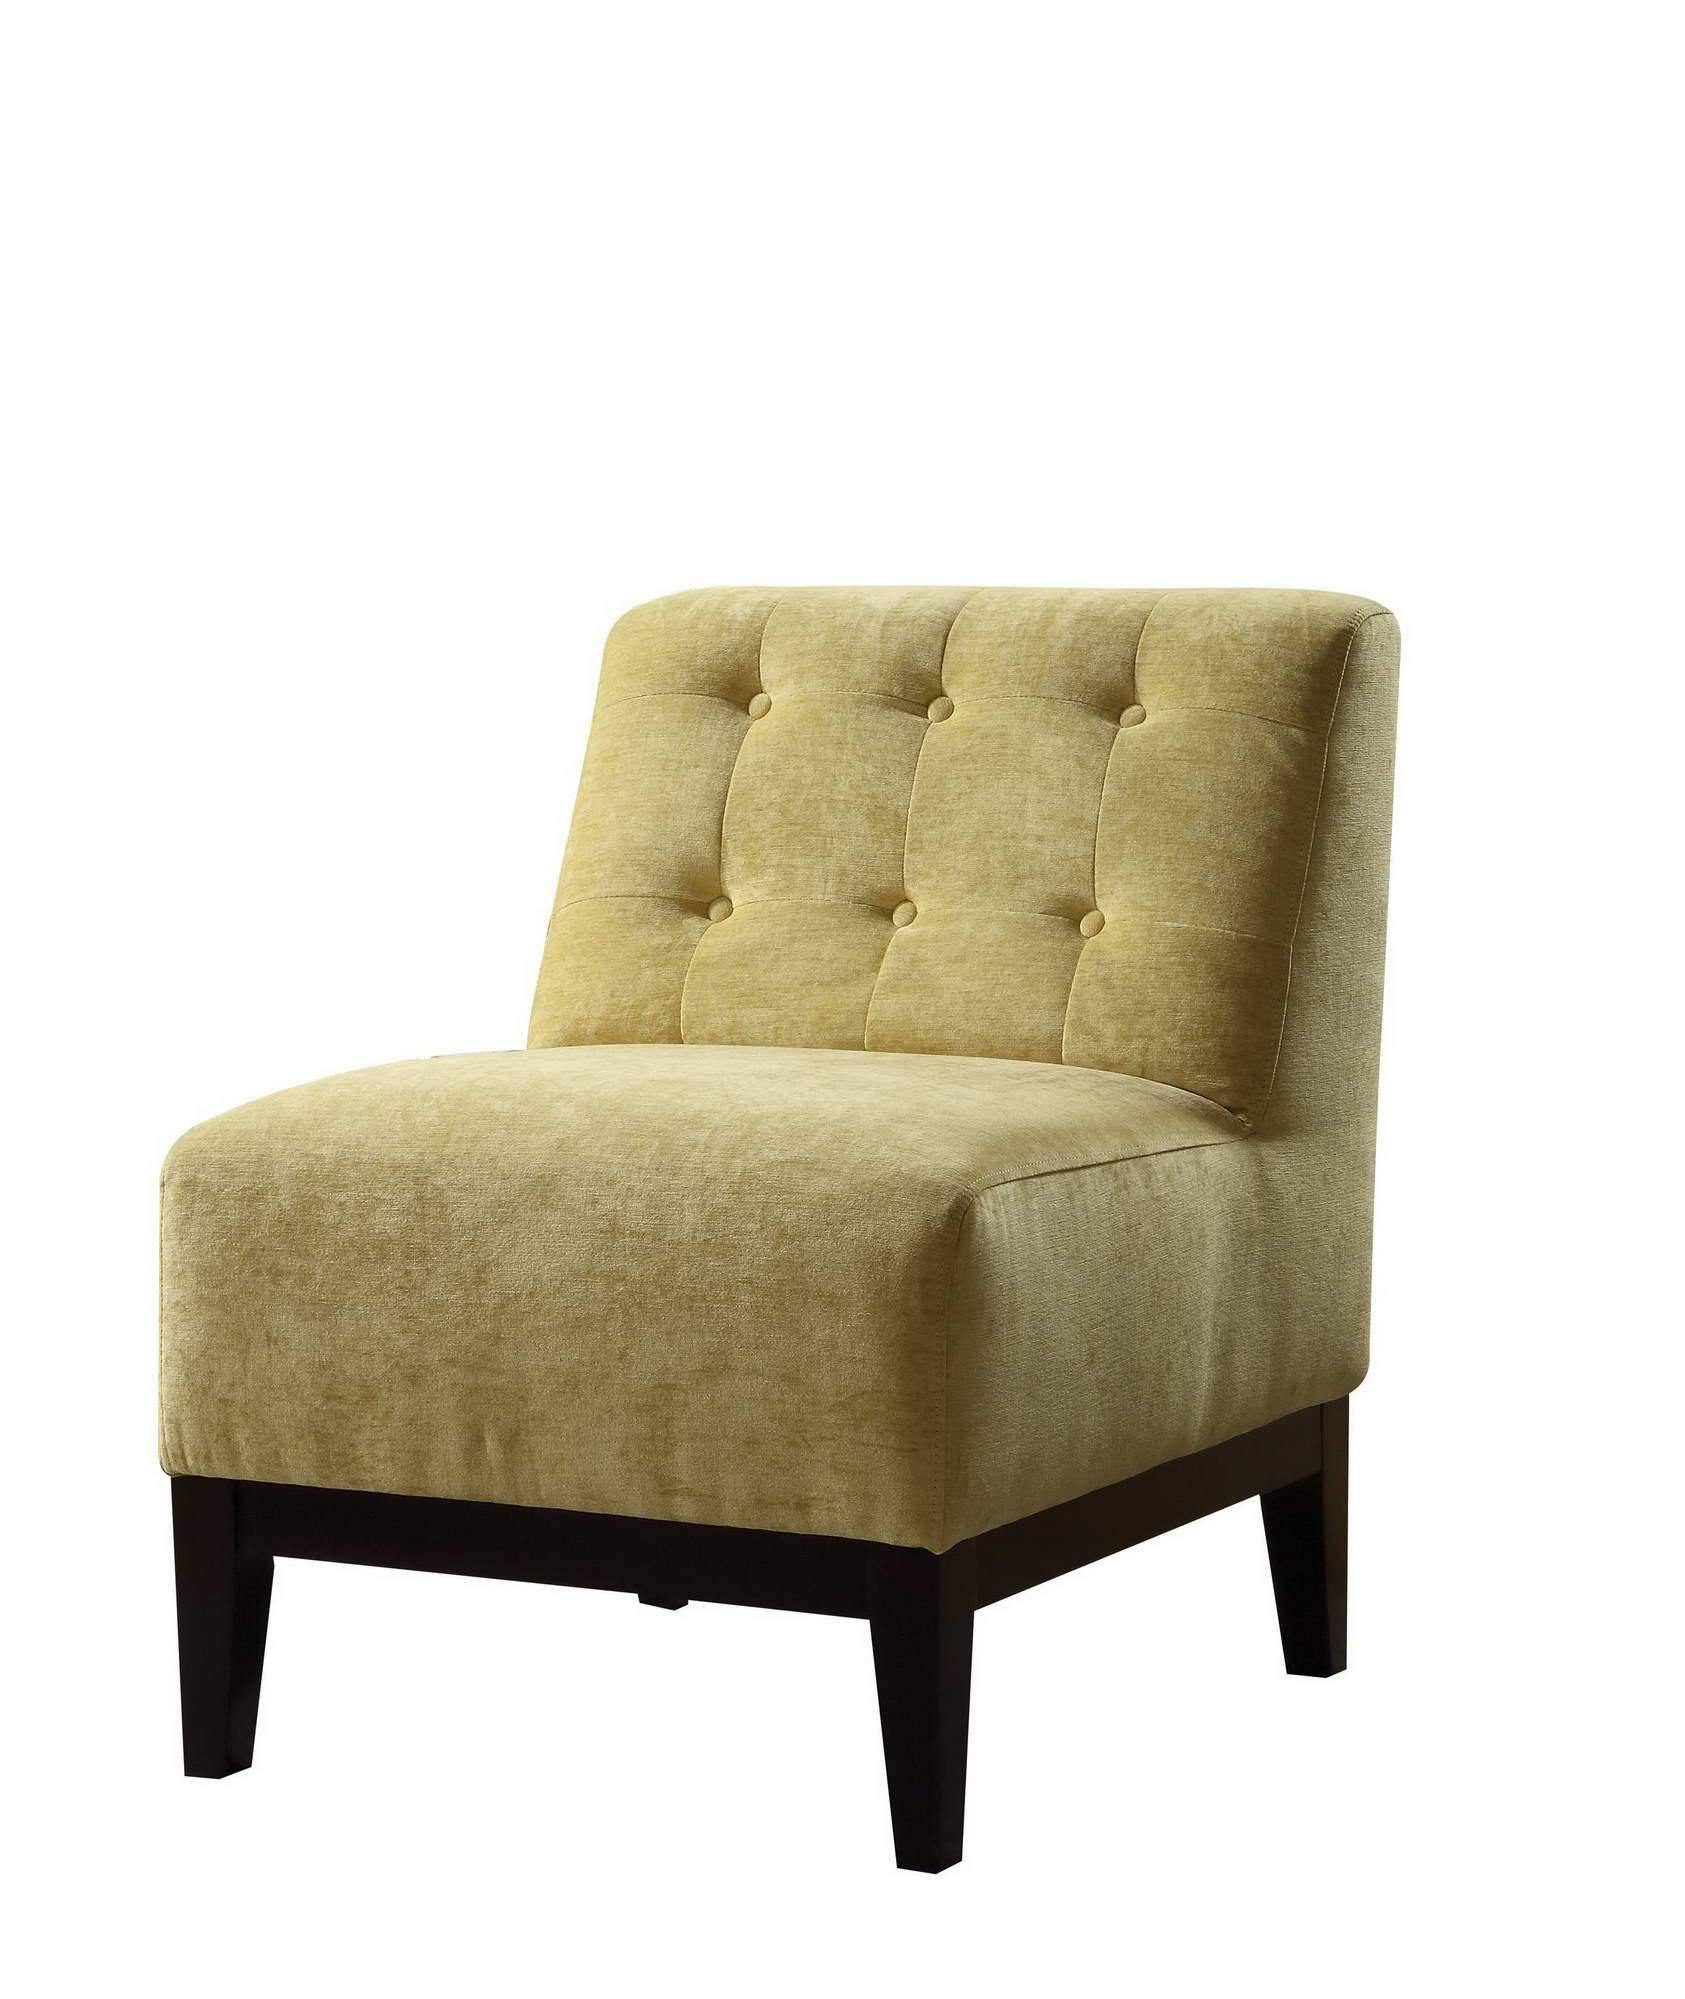 Armless Accent Chair in Yellow Fabric Upholstery